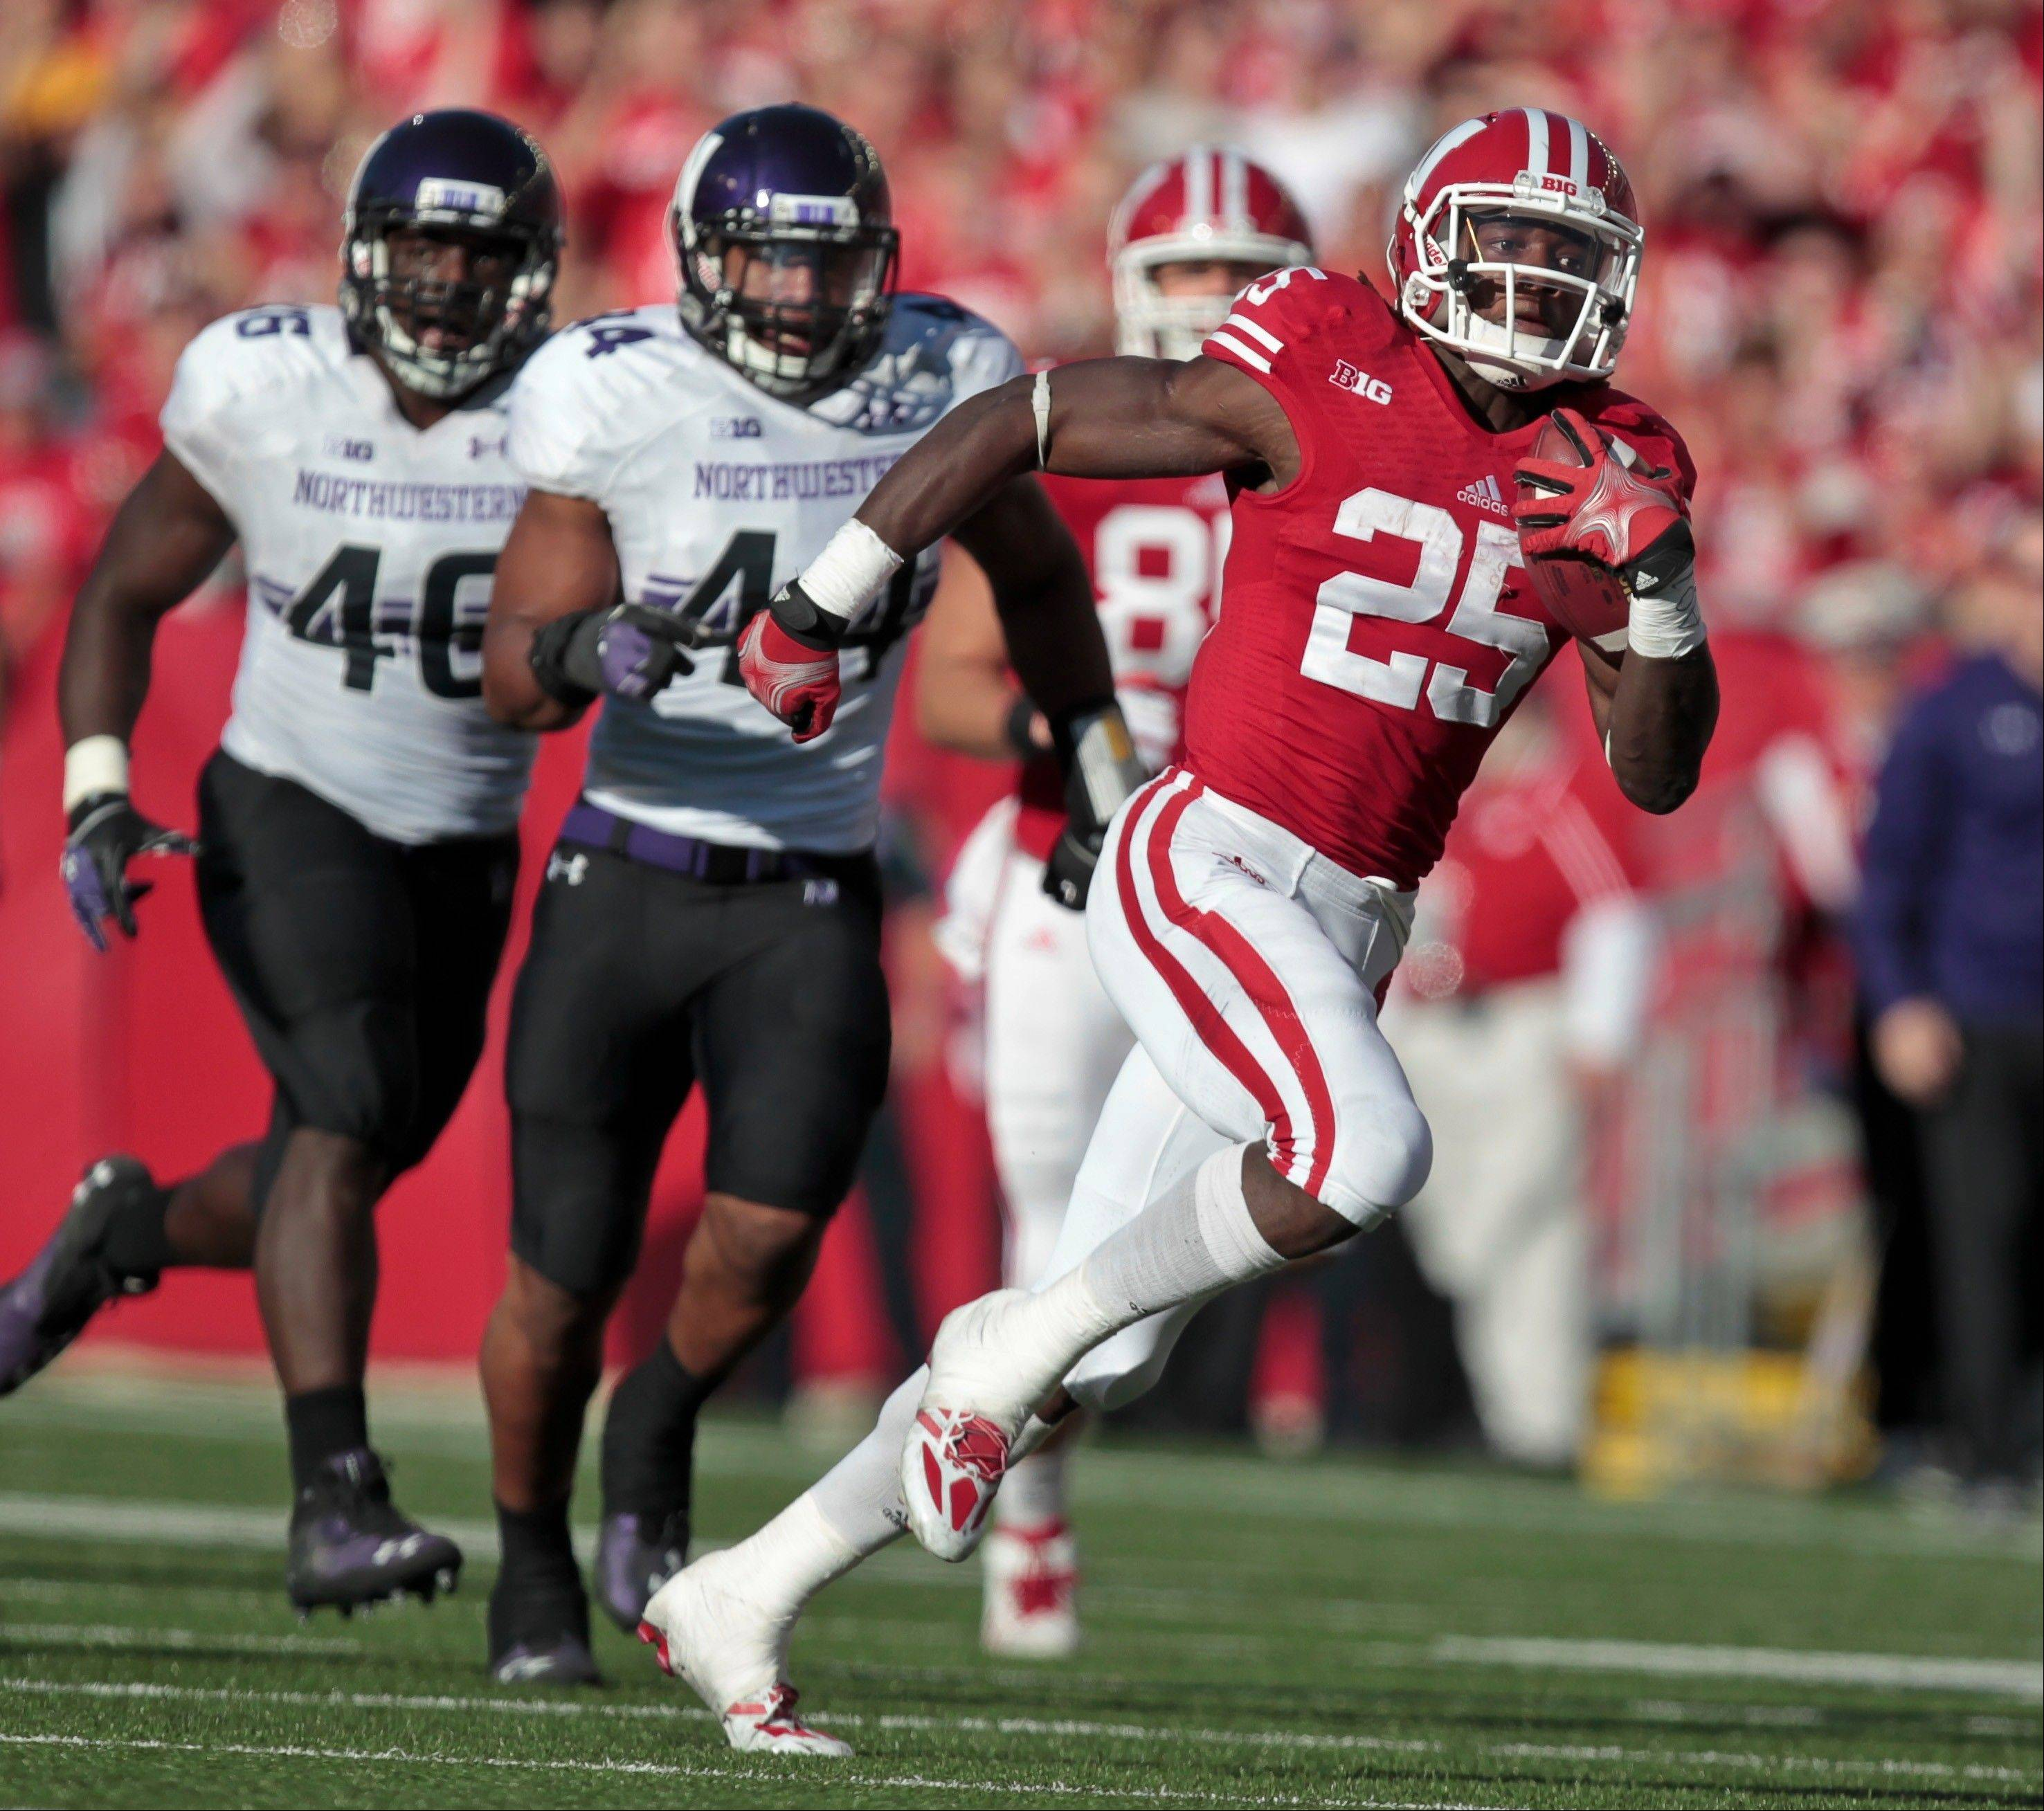 Wisconsin running back Melvin Gordon goes 71 yards for a touchdown against Northwestern on Oct. 12.